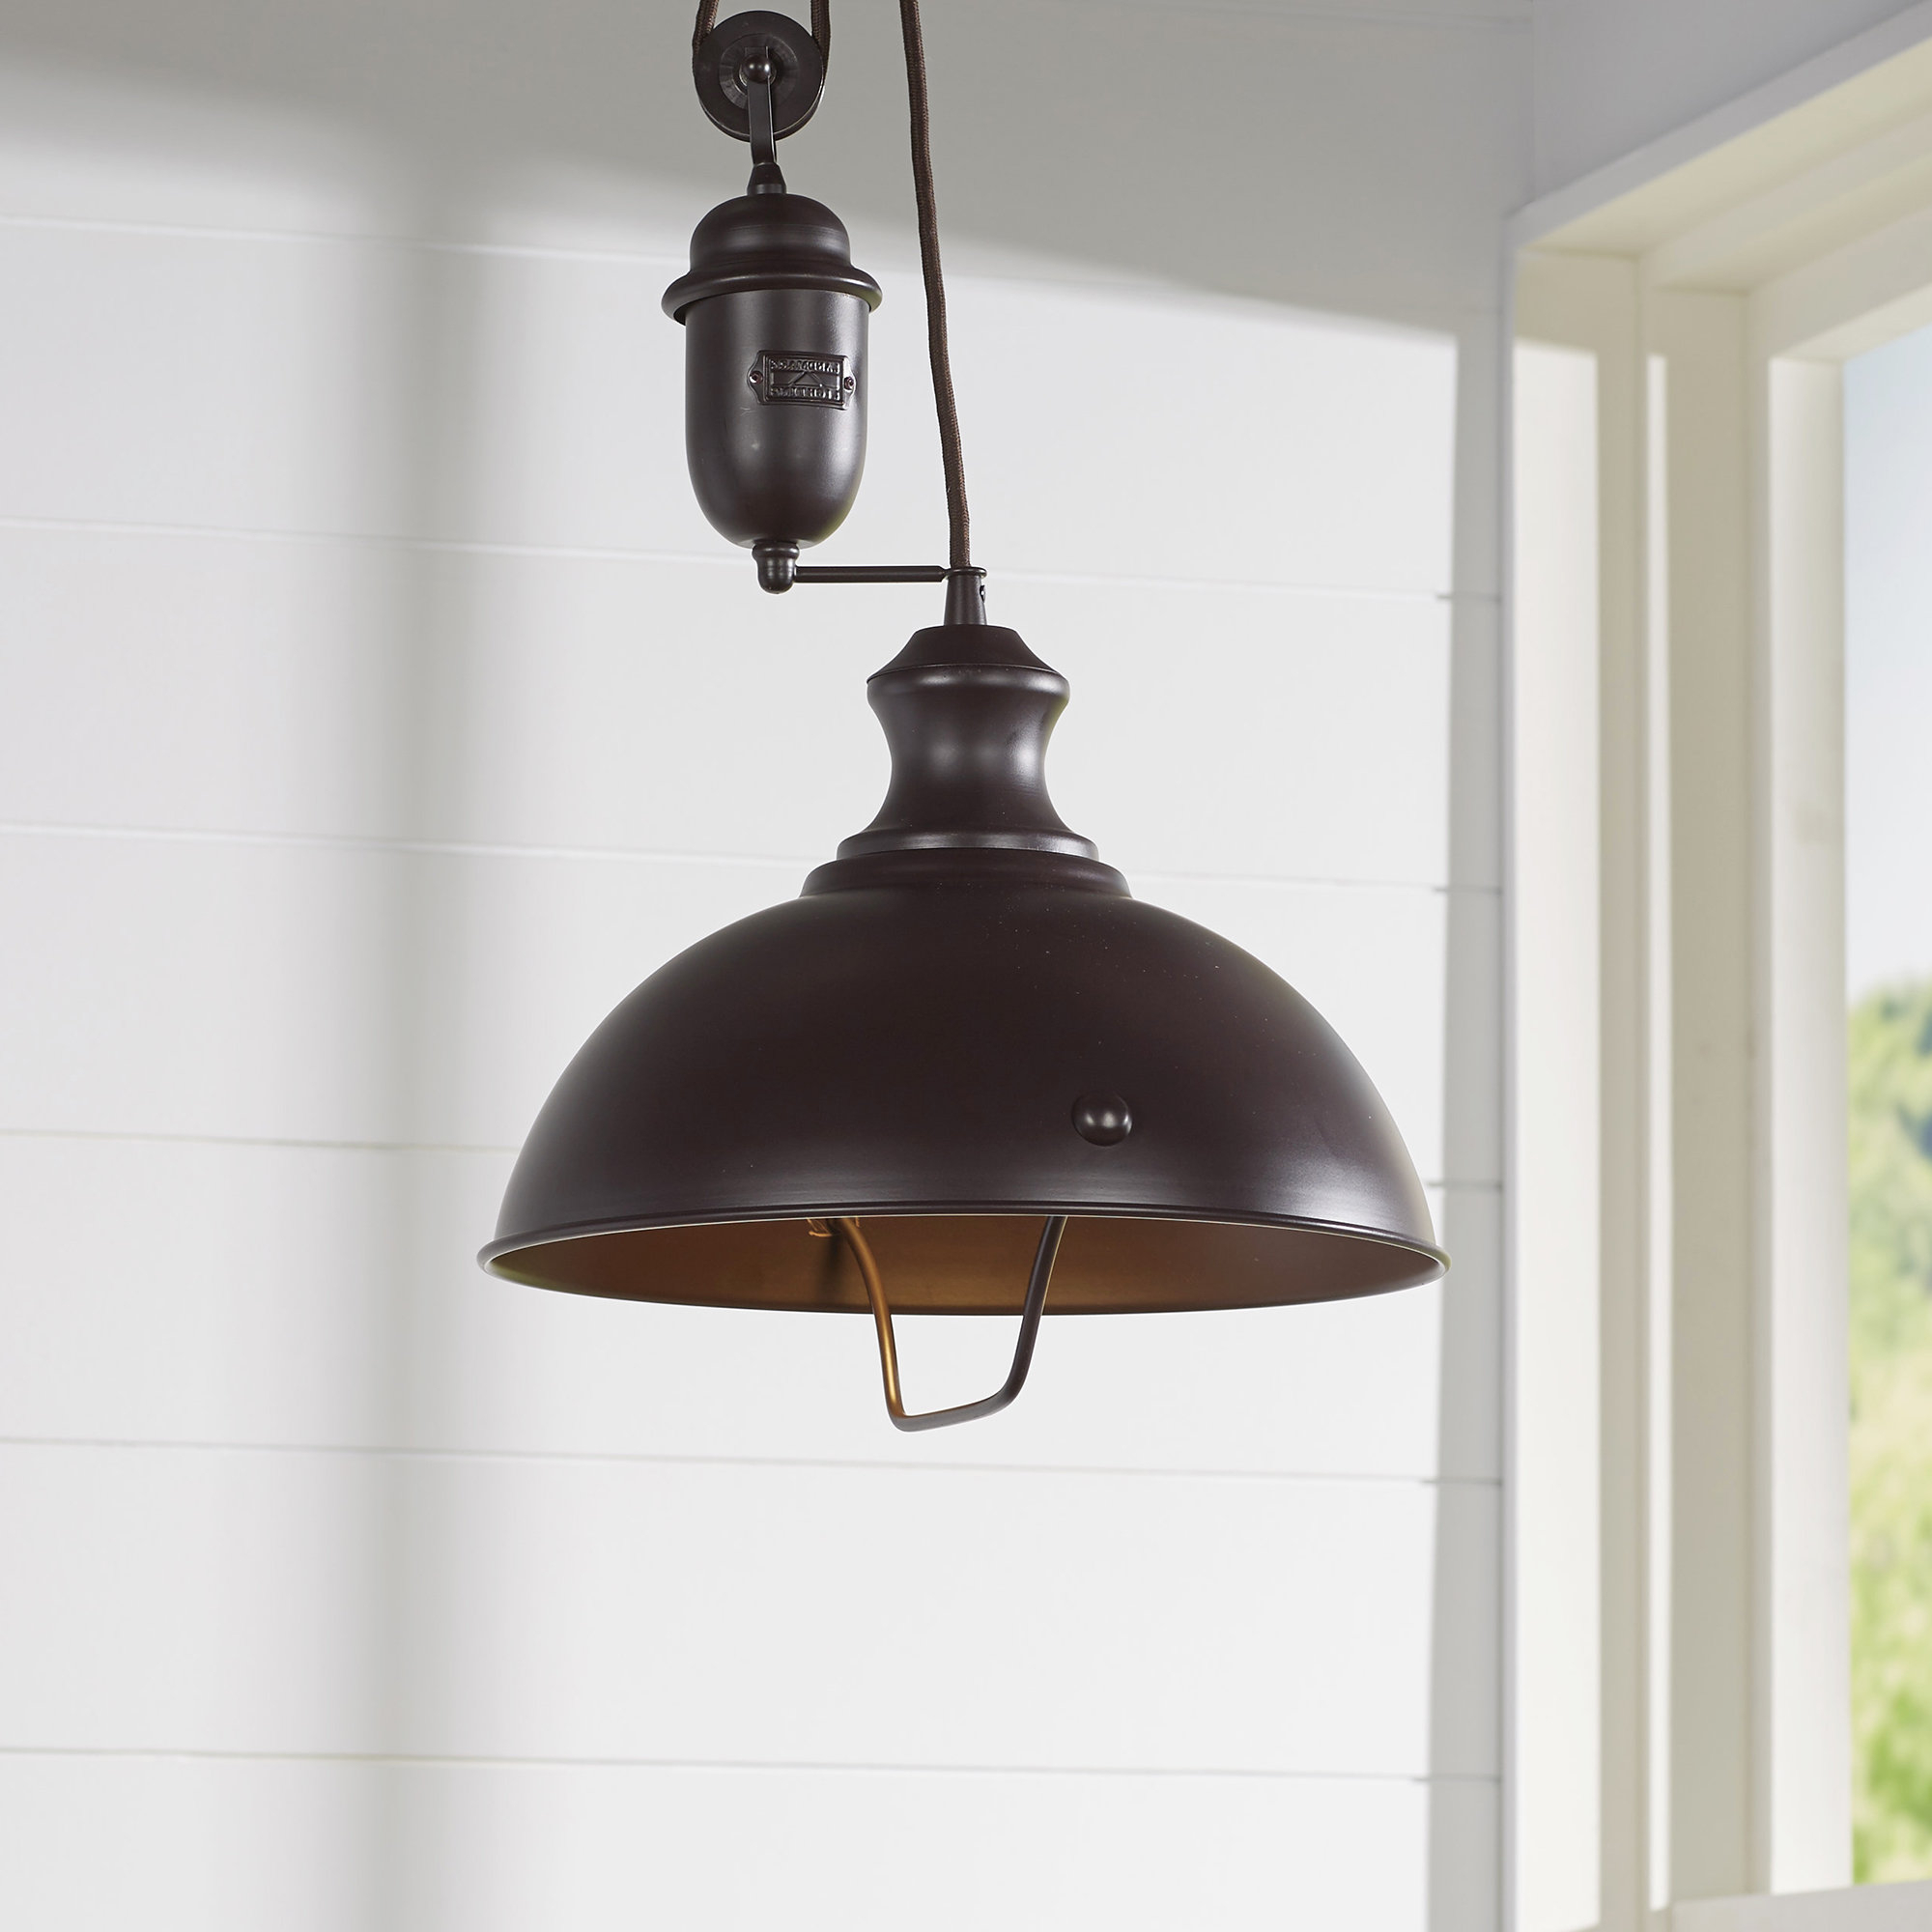 Rodriques 1 Light Bowl Pendant With Most Popular Stetson 1 Light Bowl Pendants (View 14 of 25)